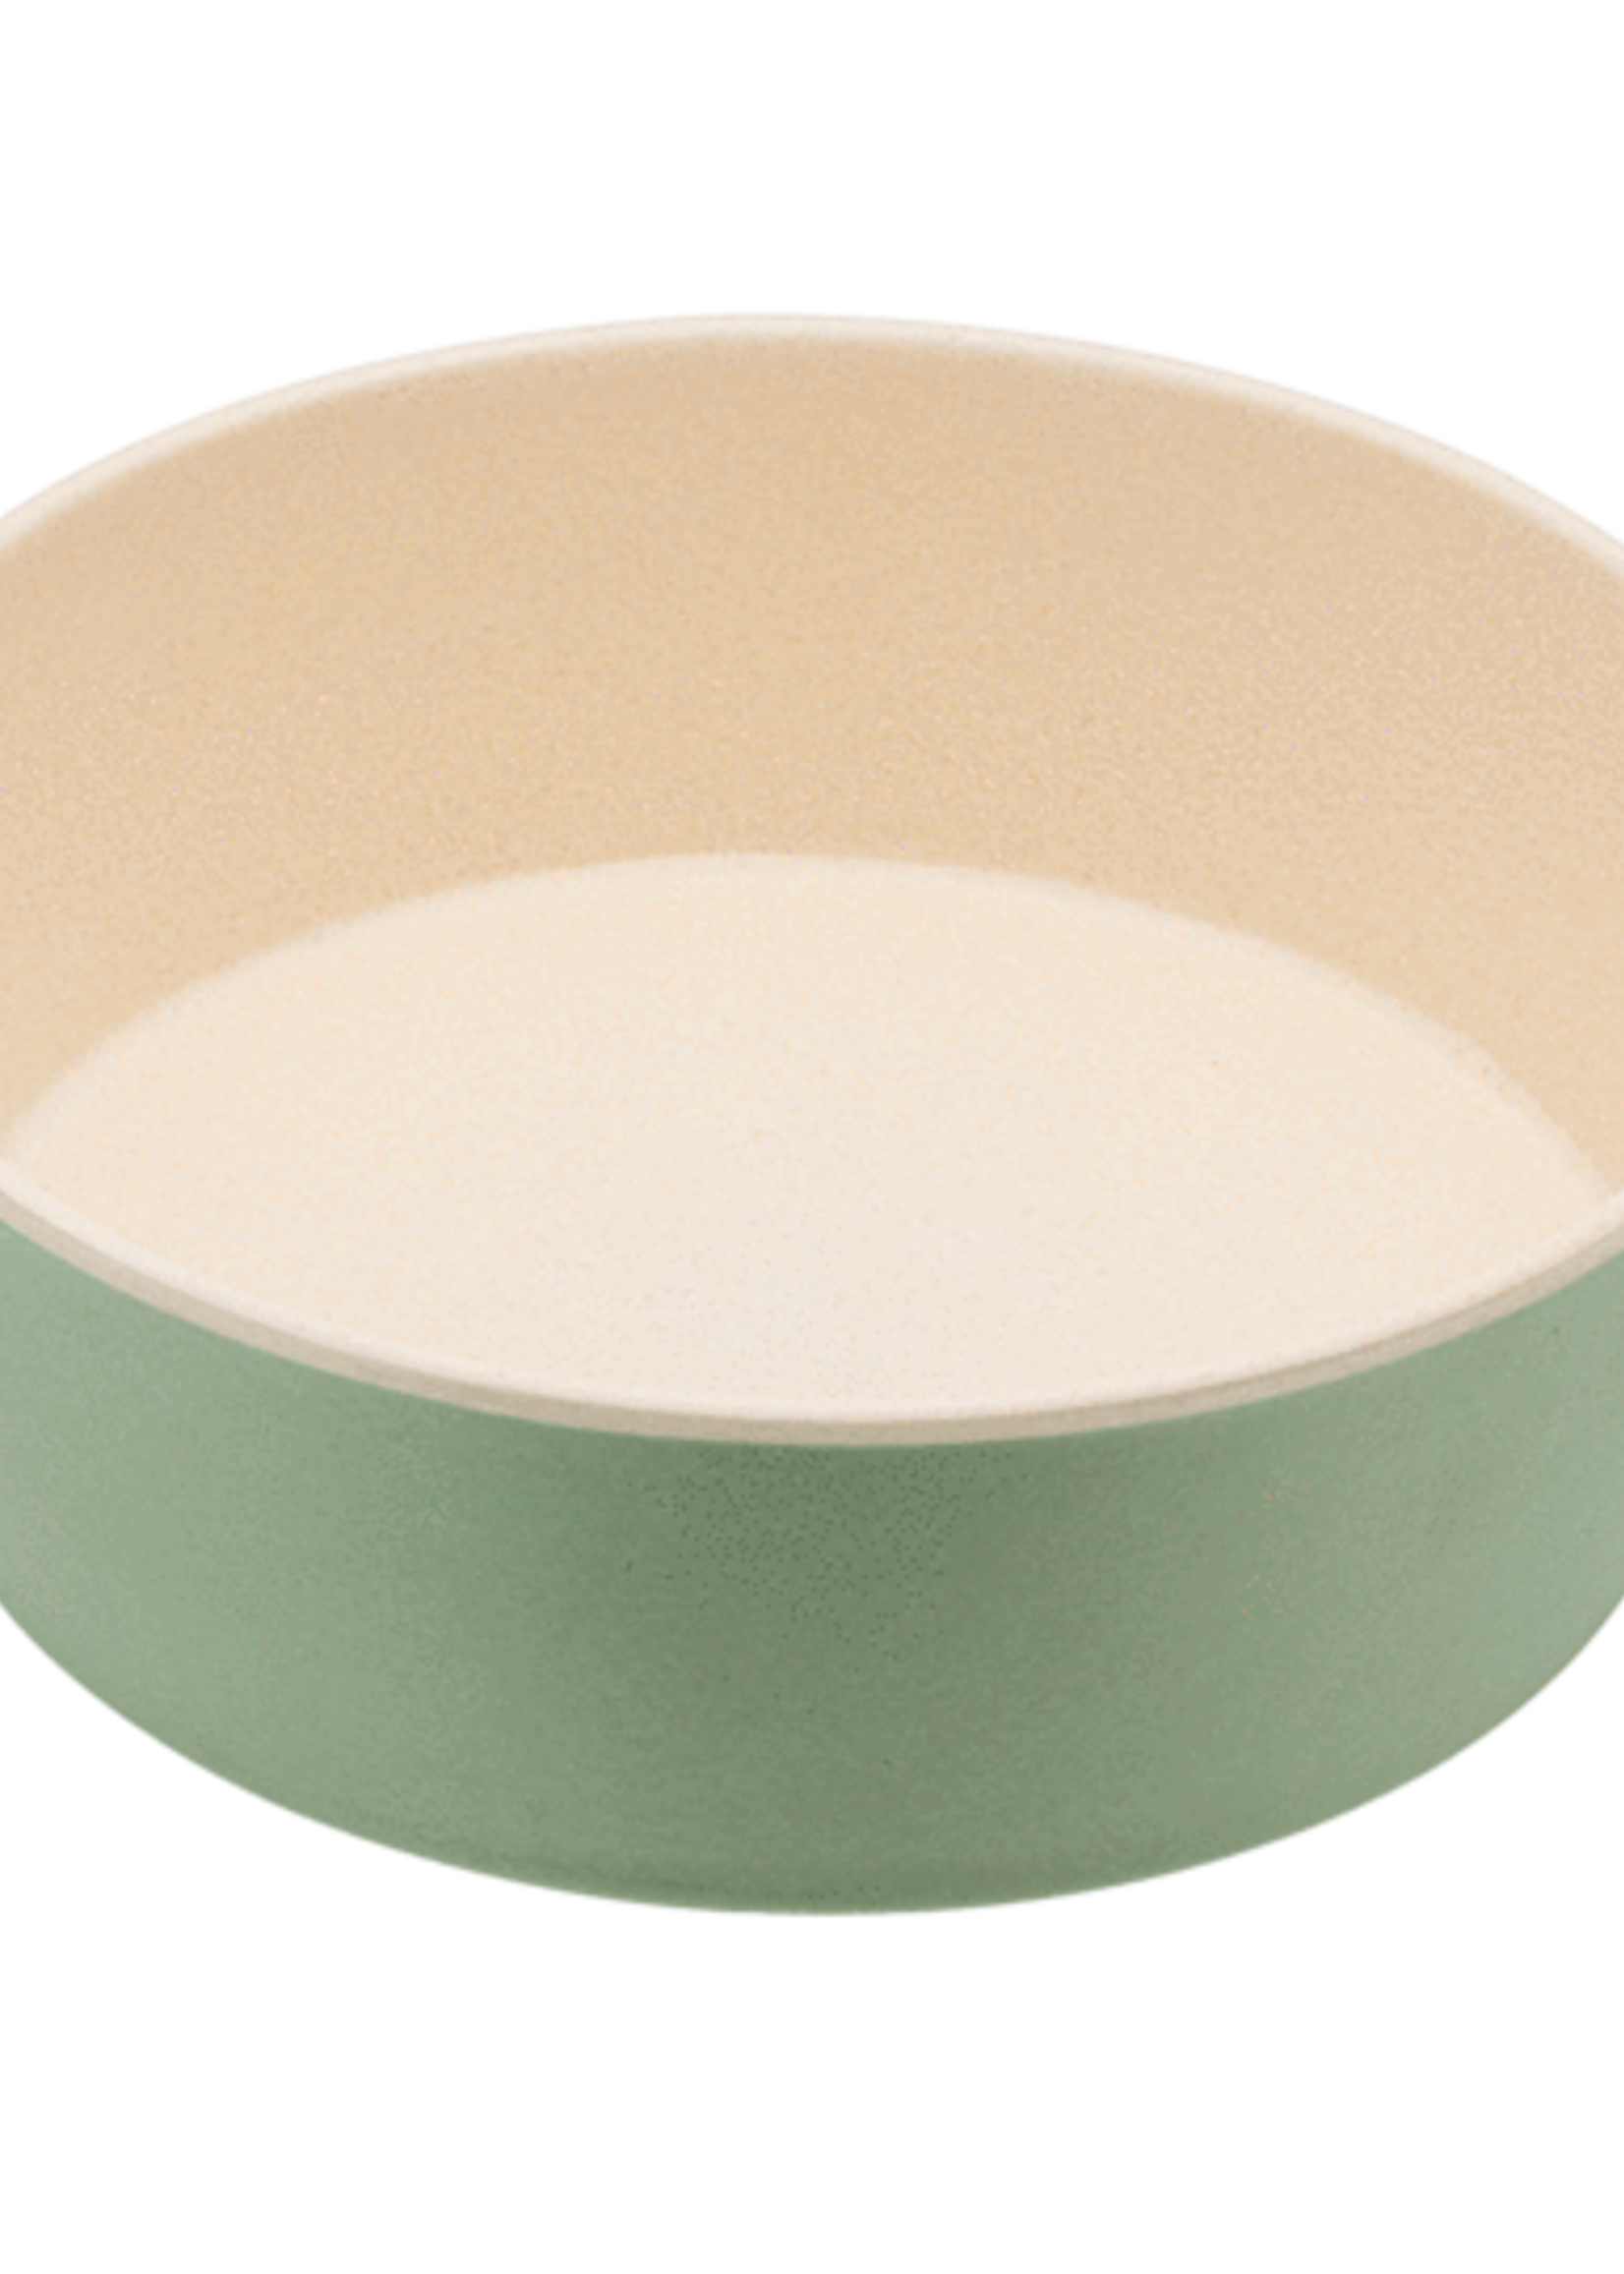 Beco Pets Beco Bowl Large Teal